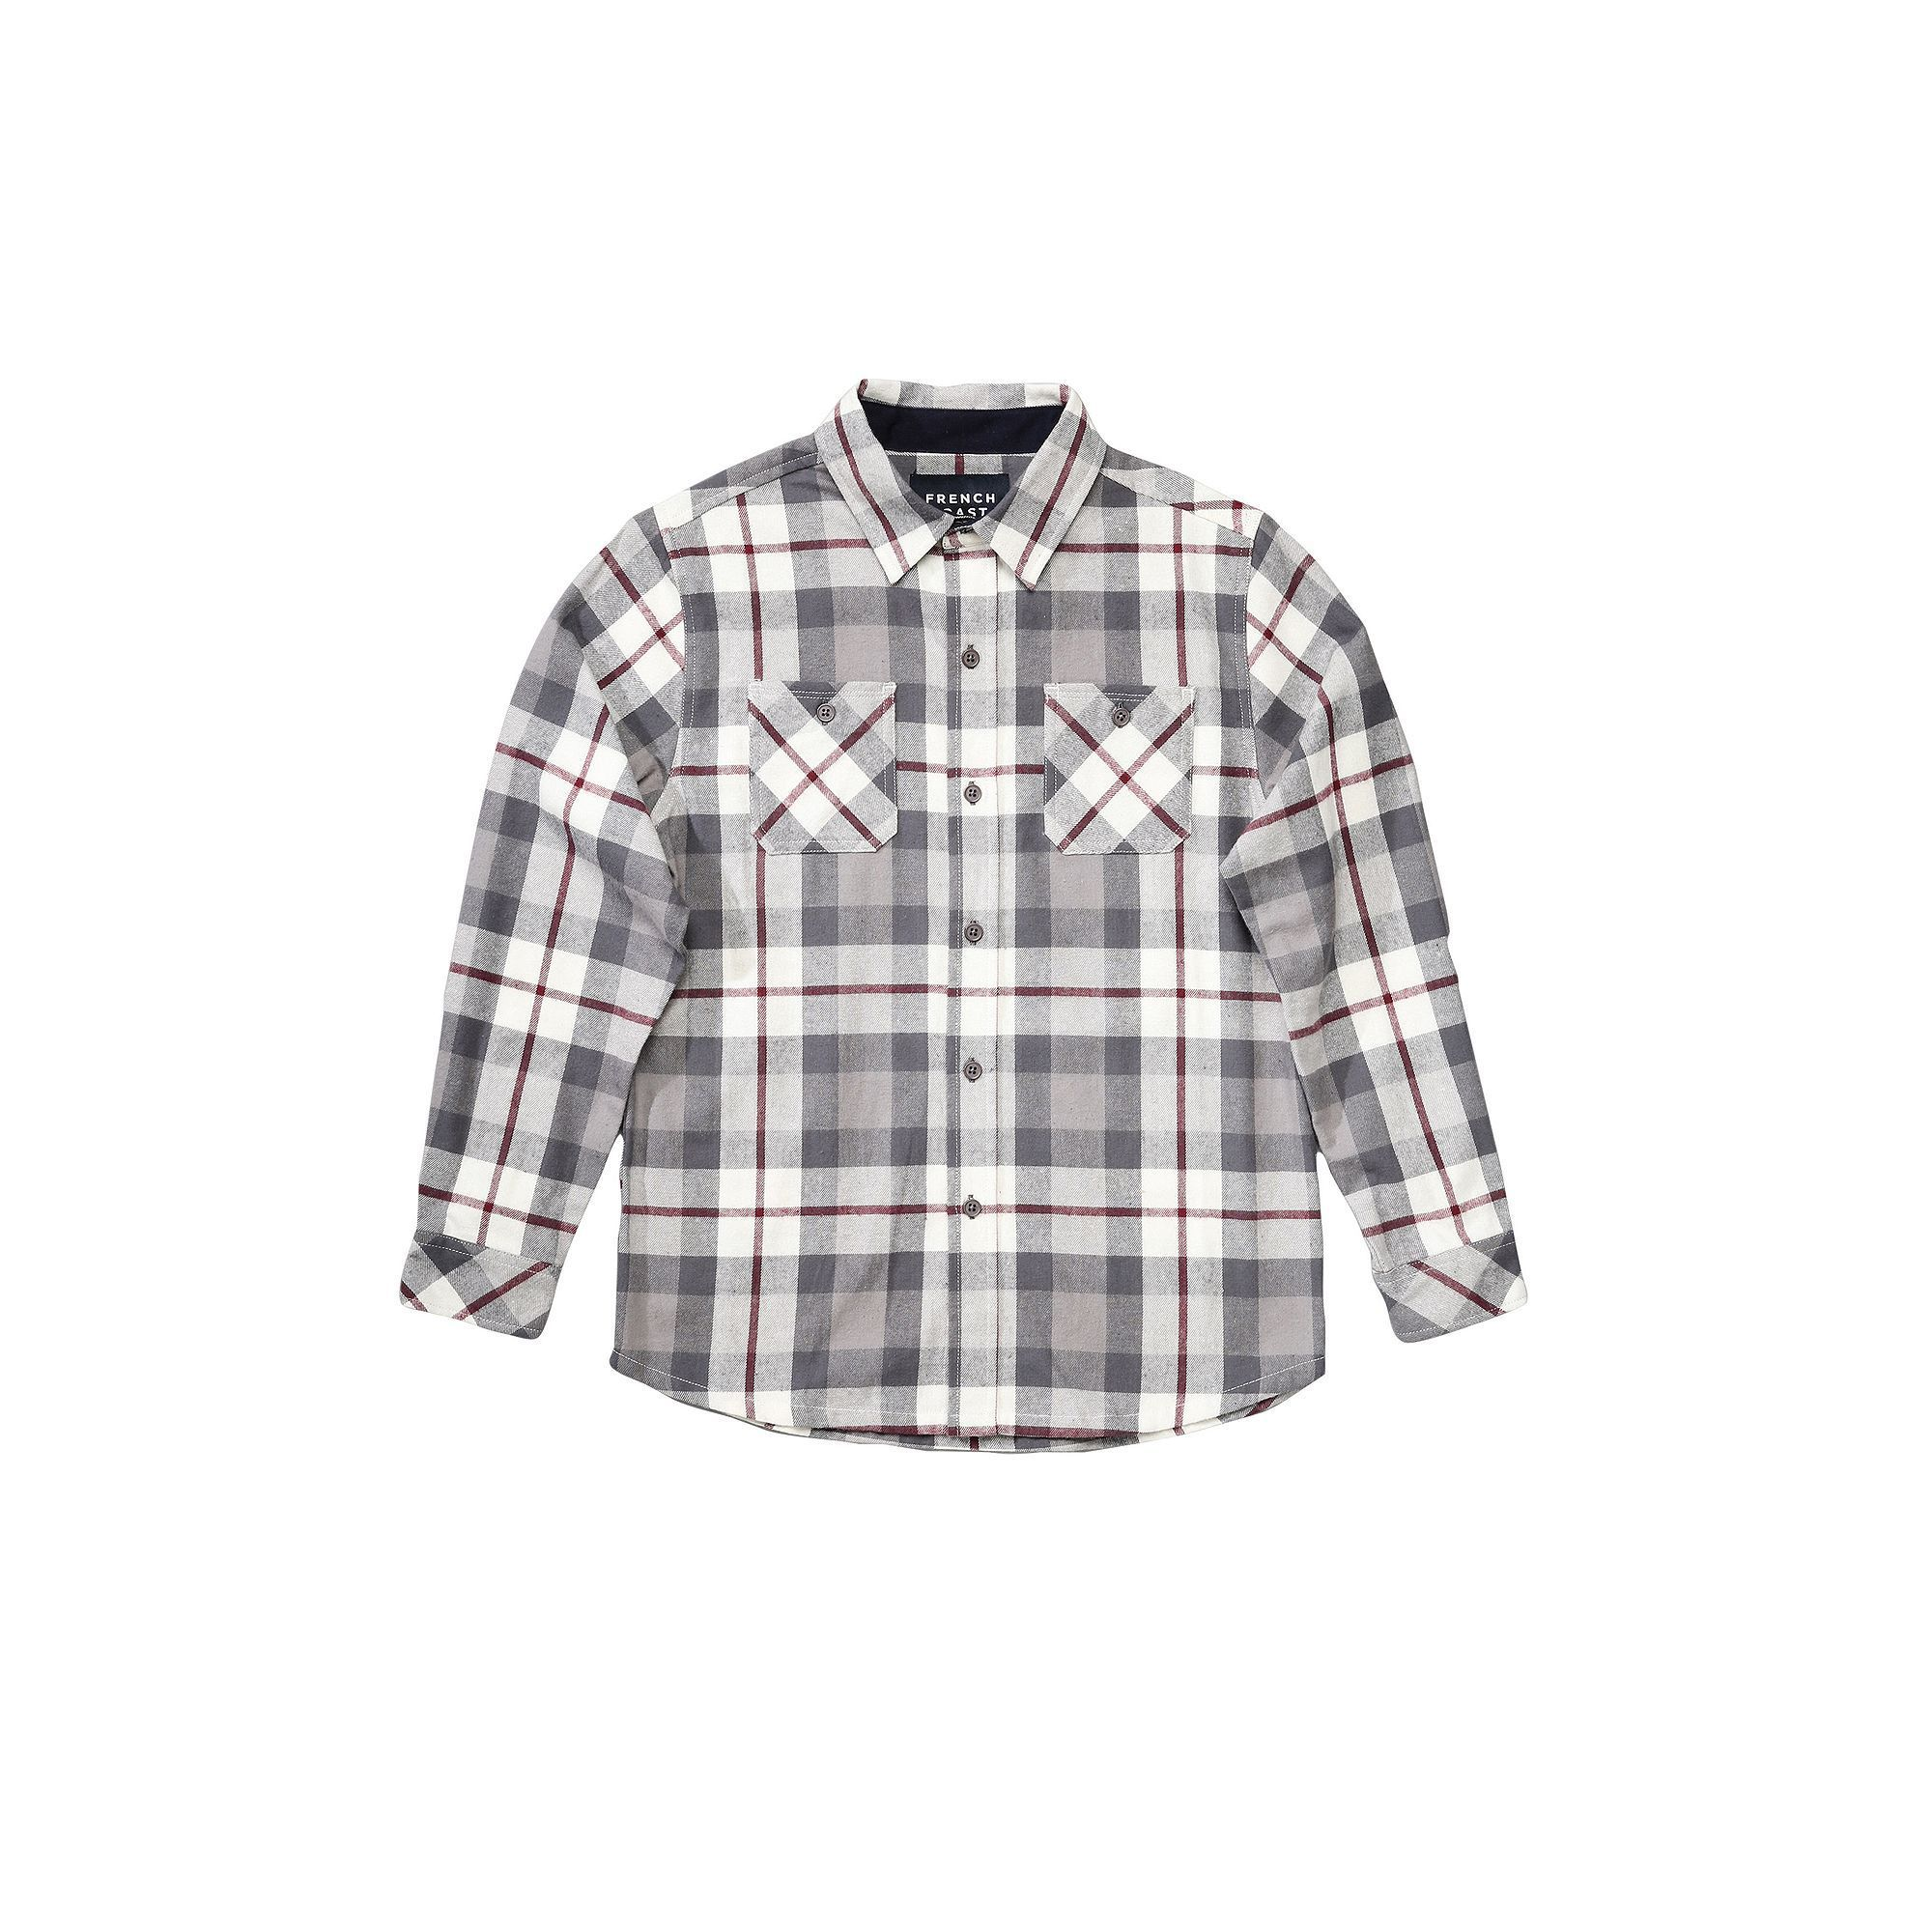 Boys 4-7 French Toast Plaid Flannel Button-Down Shirt, Boy's, Size: 4, Natural